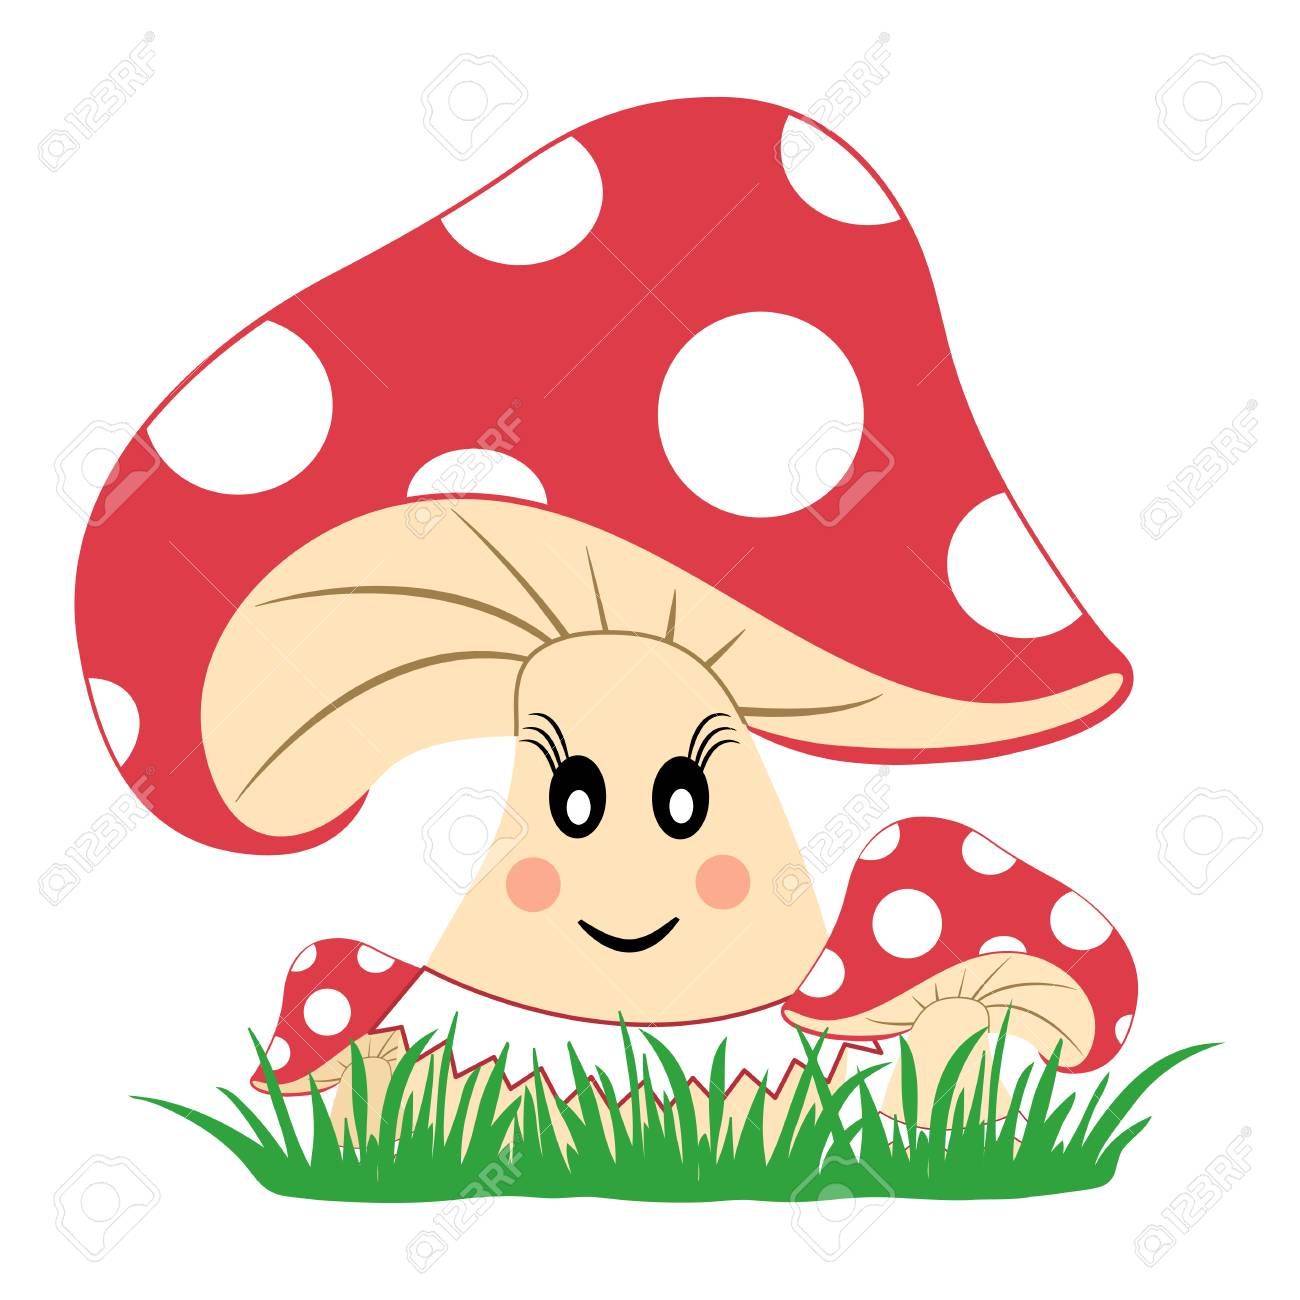 Colorful Mushrooms In The Grass  Mushroom With Emotion  Smiling